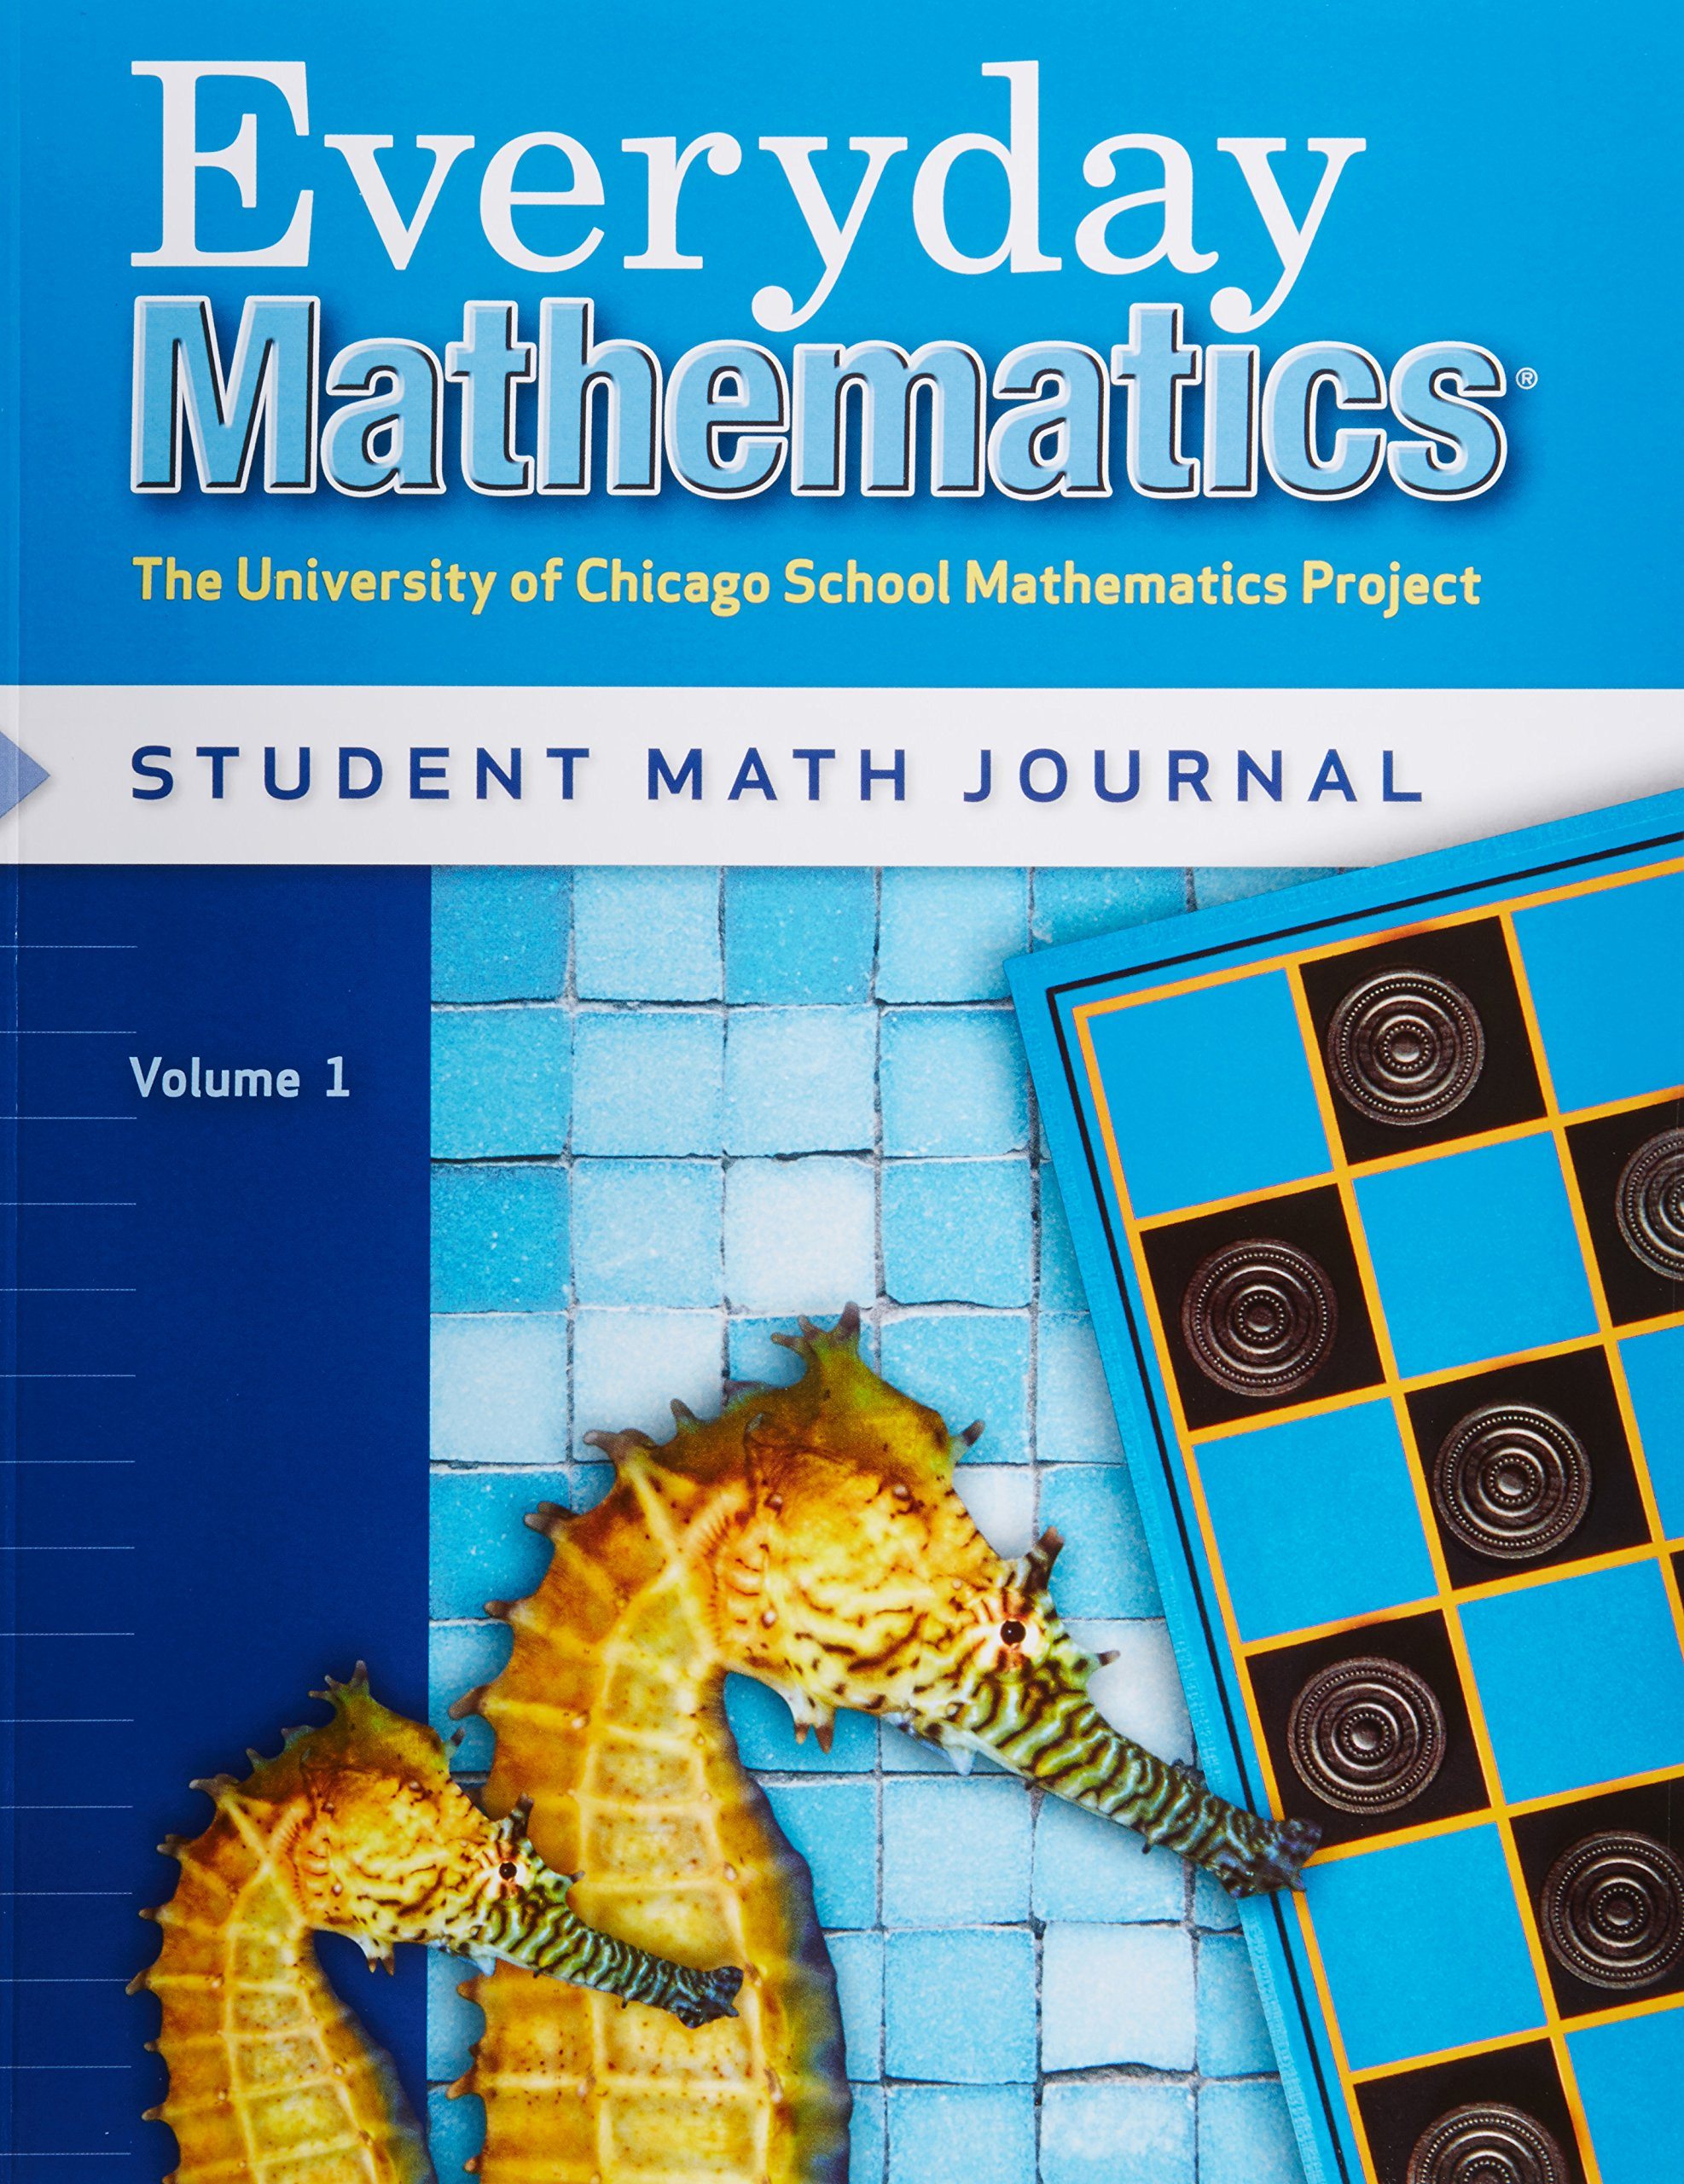 Everyday Mathematics Student Math Journal Volume 1 and 2 - Reorder ...